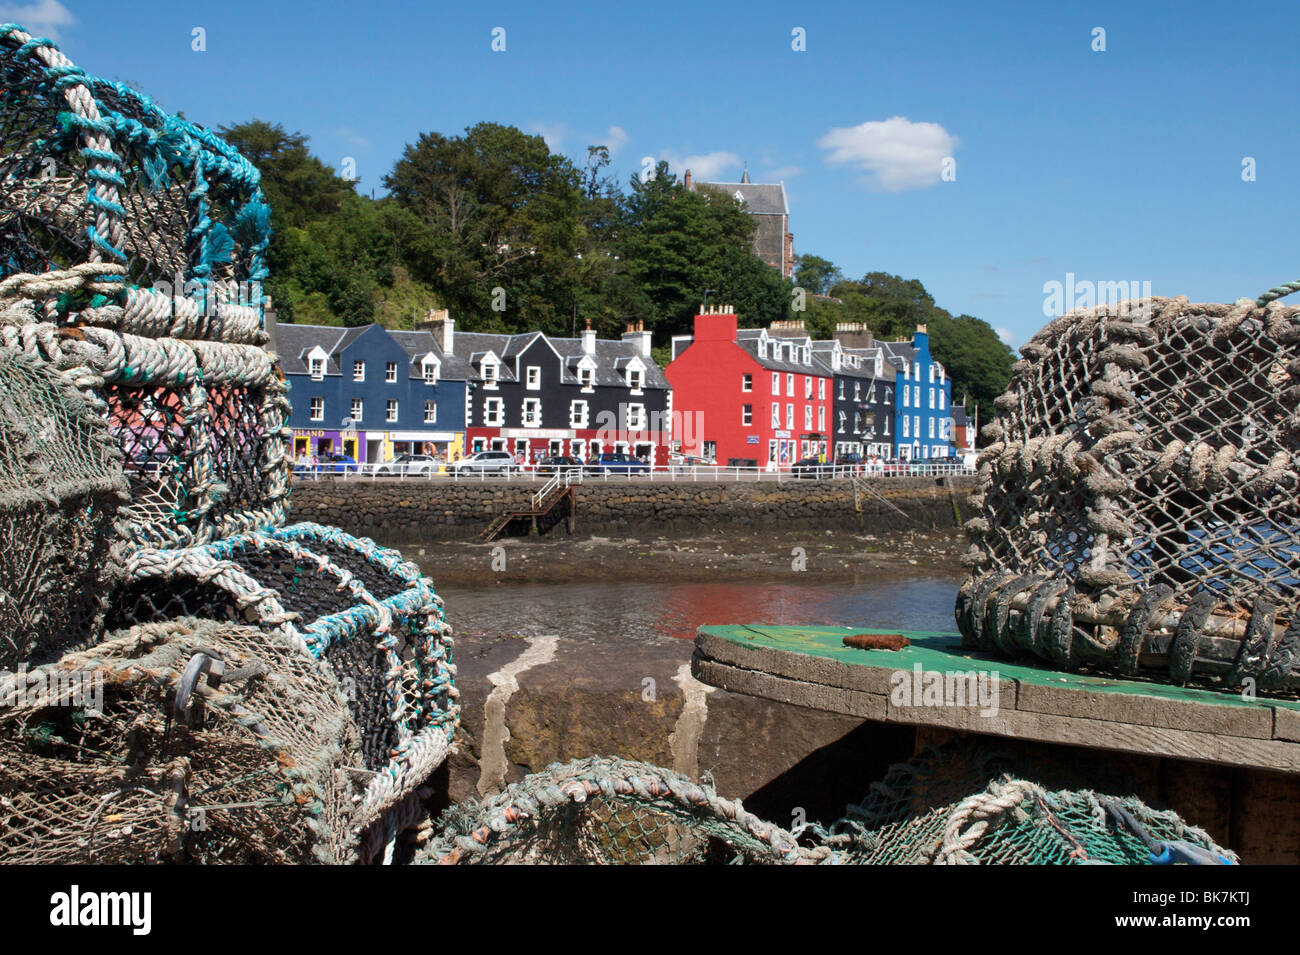 Lobster pots in Tobermory, Mull, Inner Hebrides, Scotland, United Kingdom, Europe - Stock Image